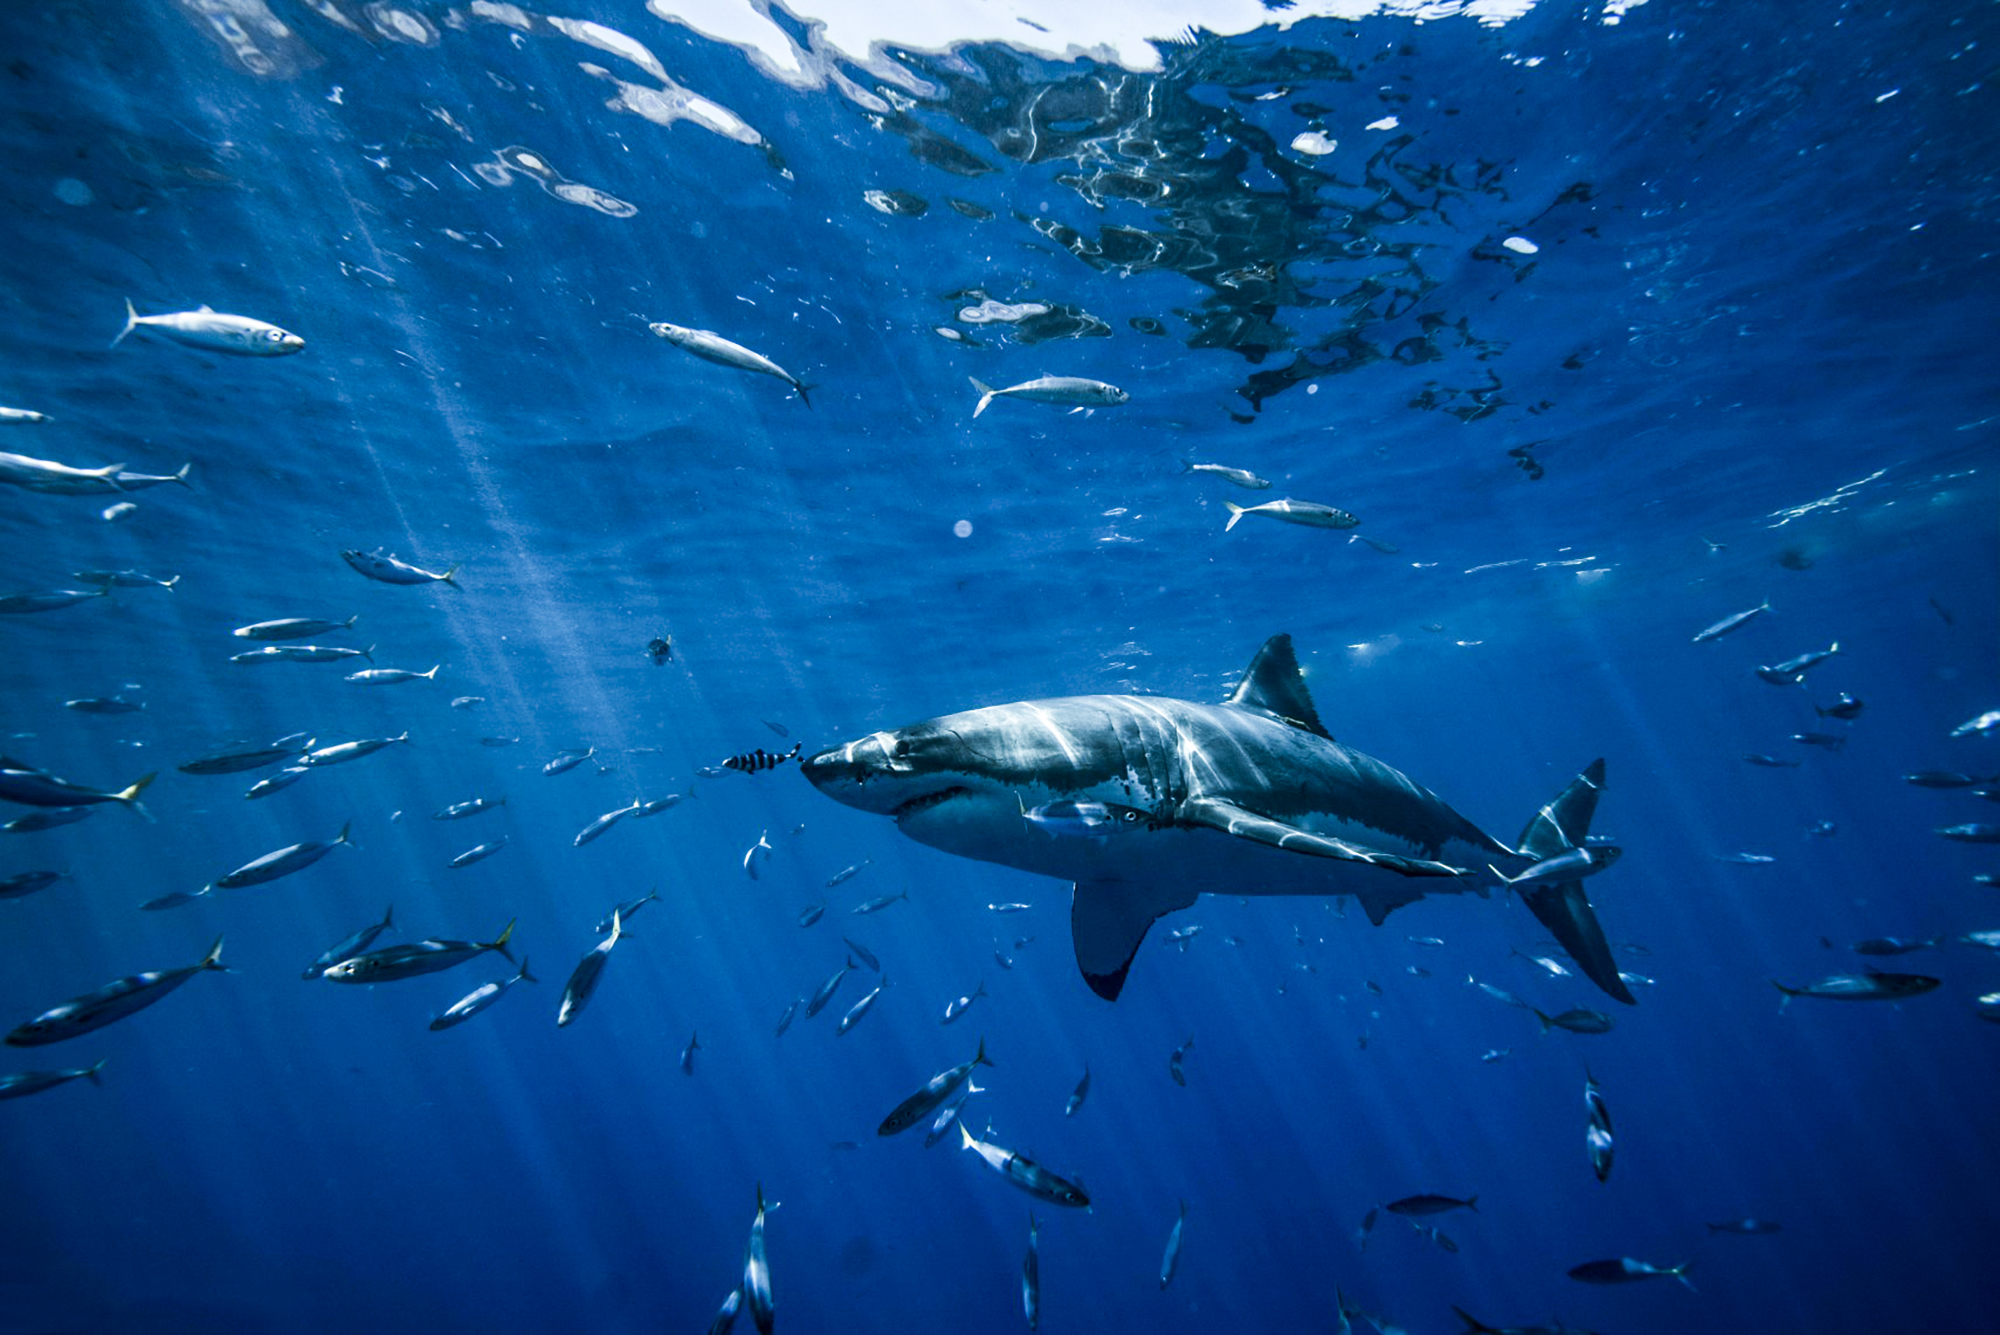 A peaceful moment underwater with a great white, photo by Saunders Drukker